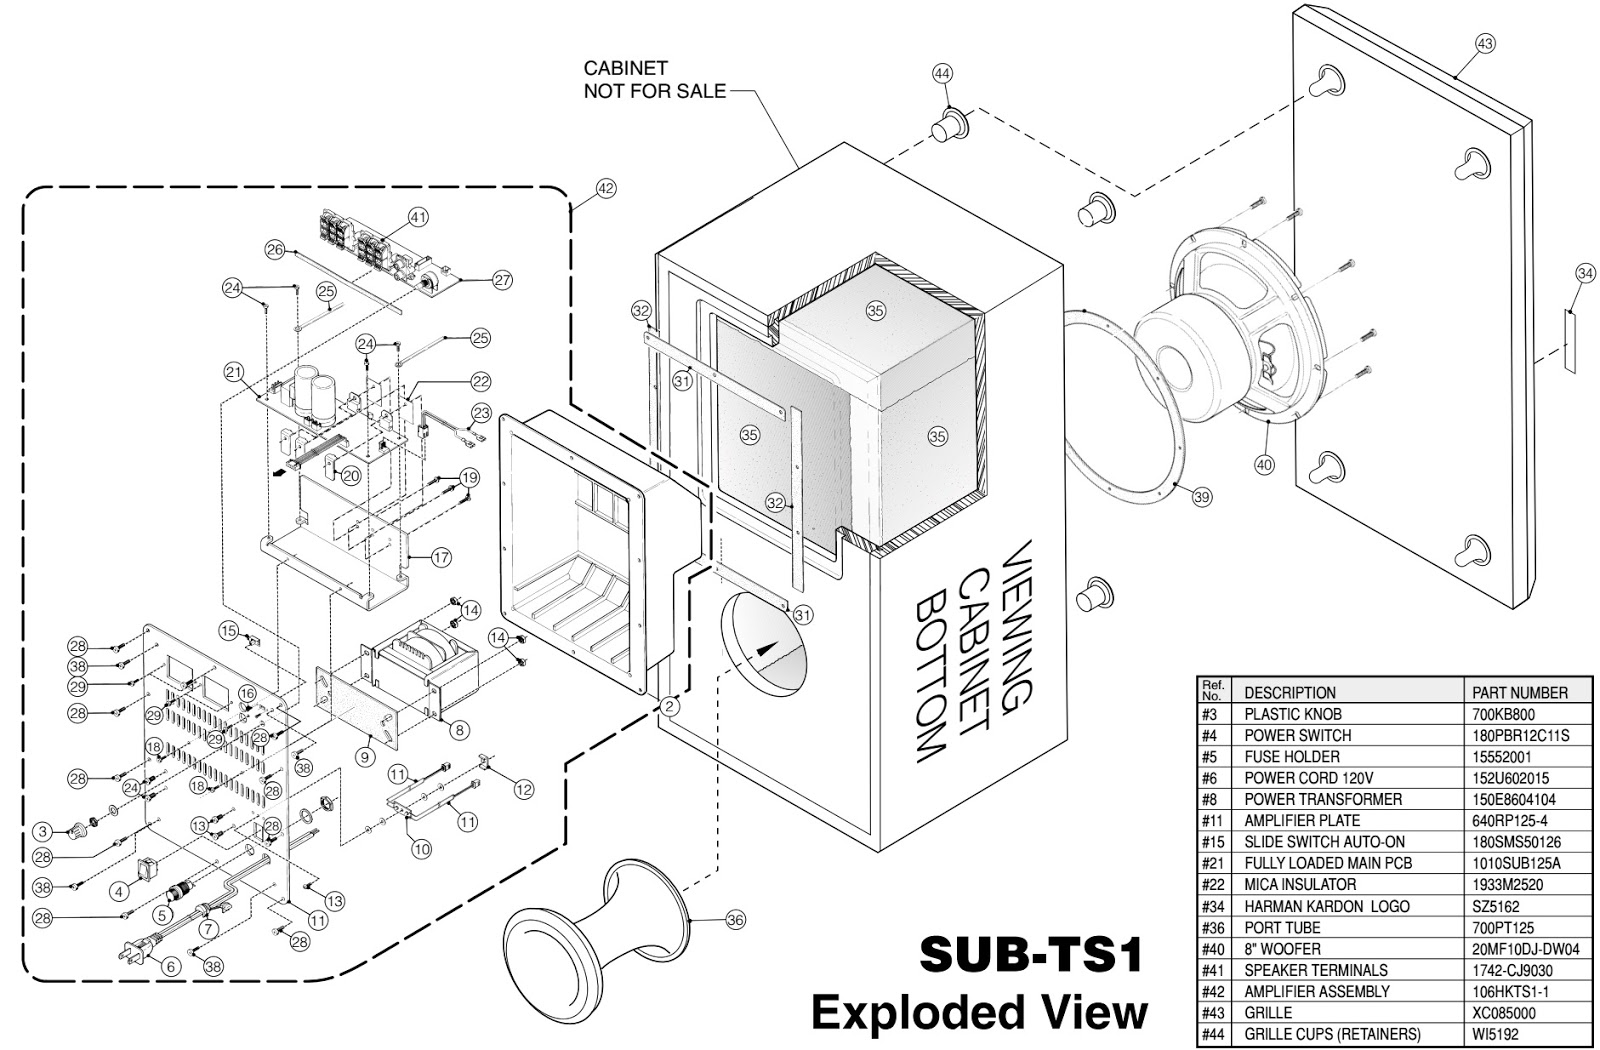 Harman Kardon Sub Ts1 Amplifier Sub Woofer Schematic